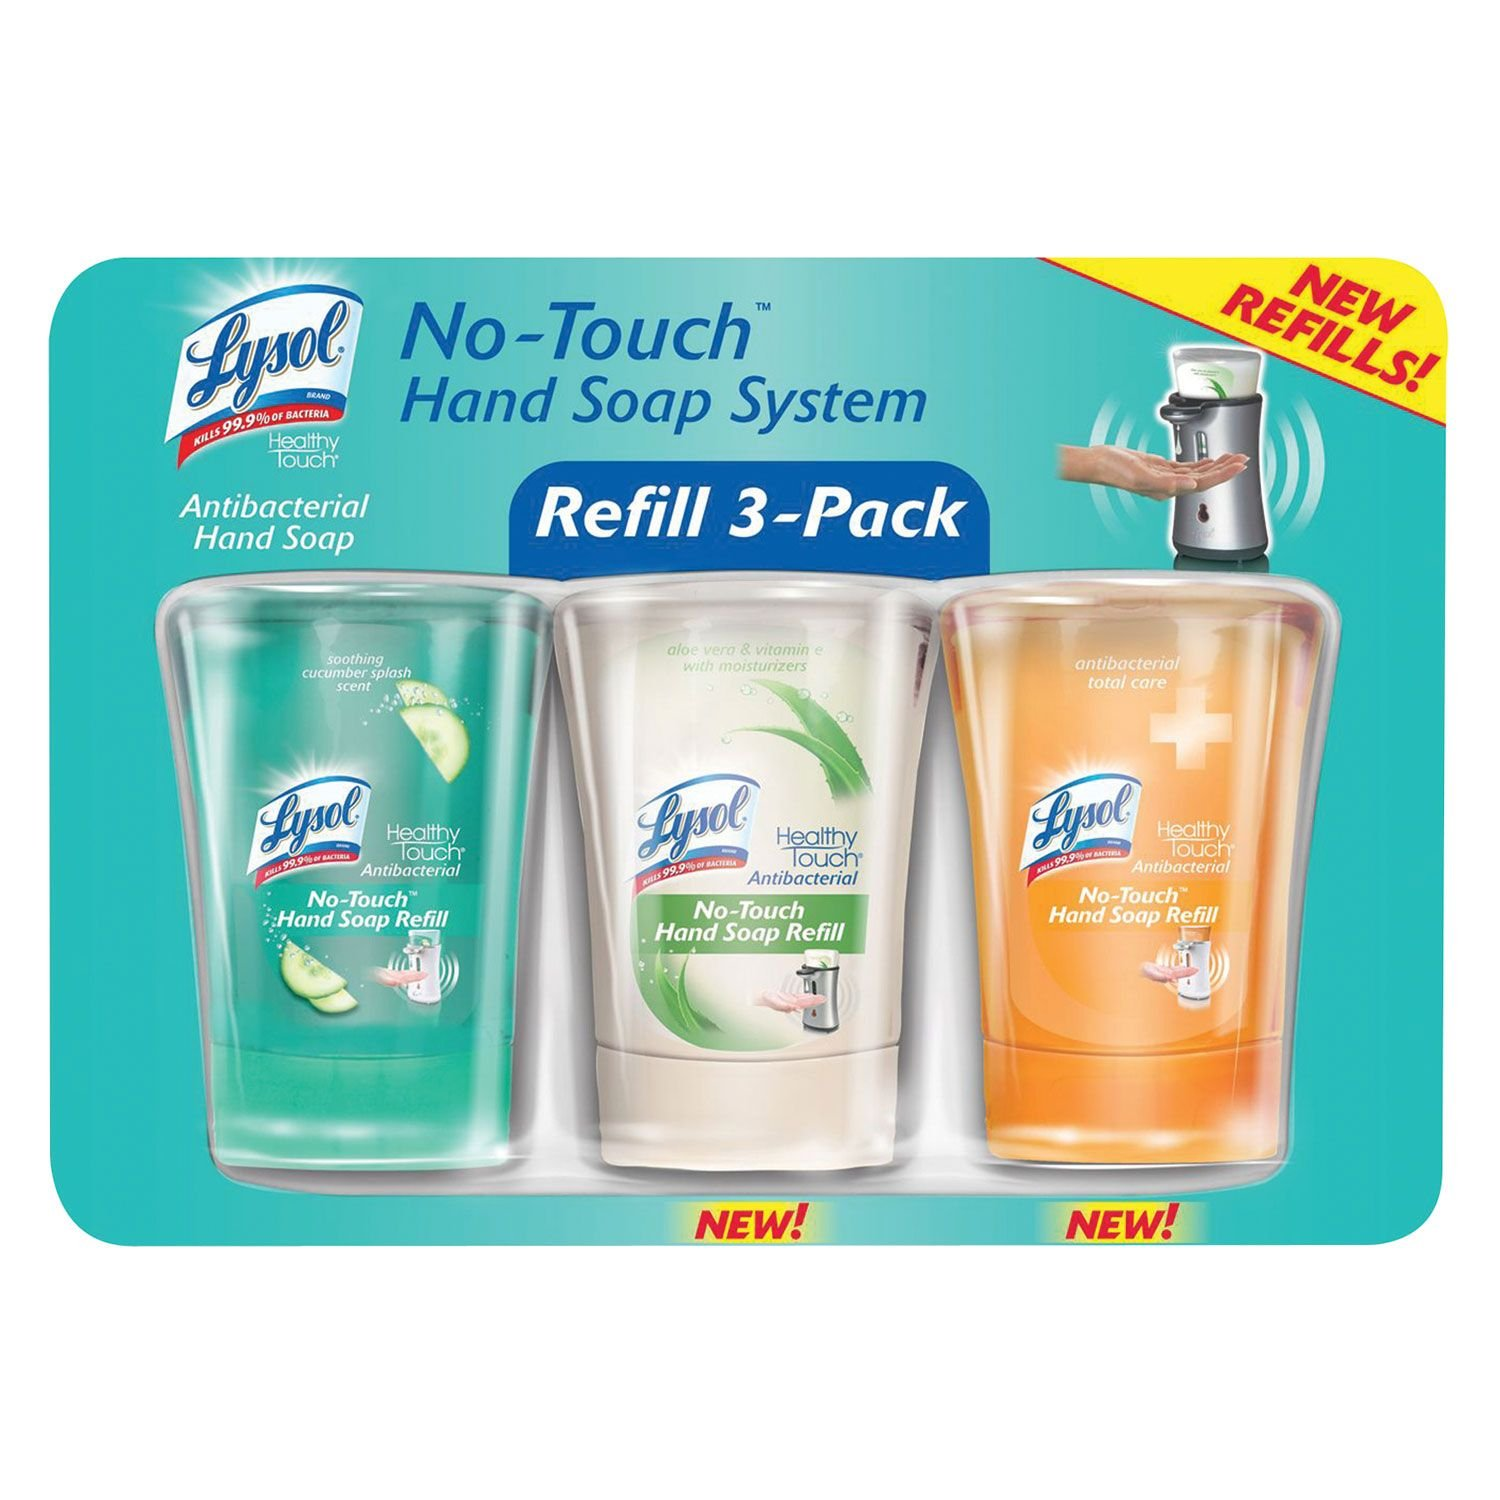 Amazon.com: ALL NEW Lysol No Touch Hand Soap System Refill 3-Pack ...